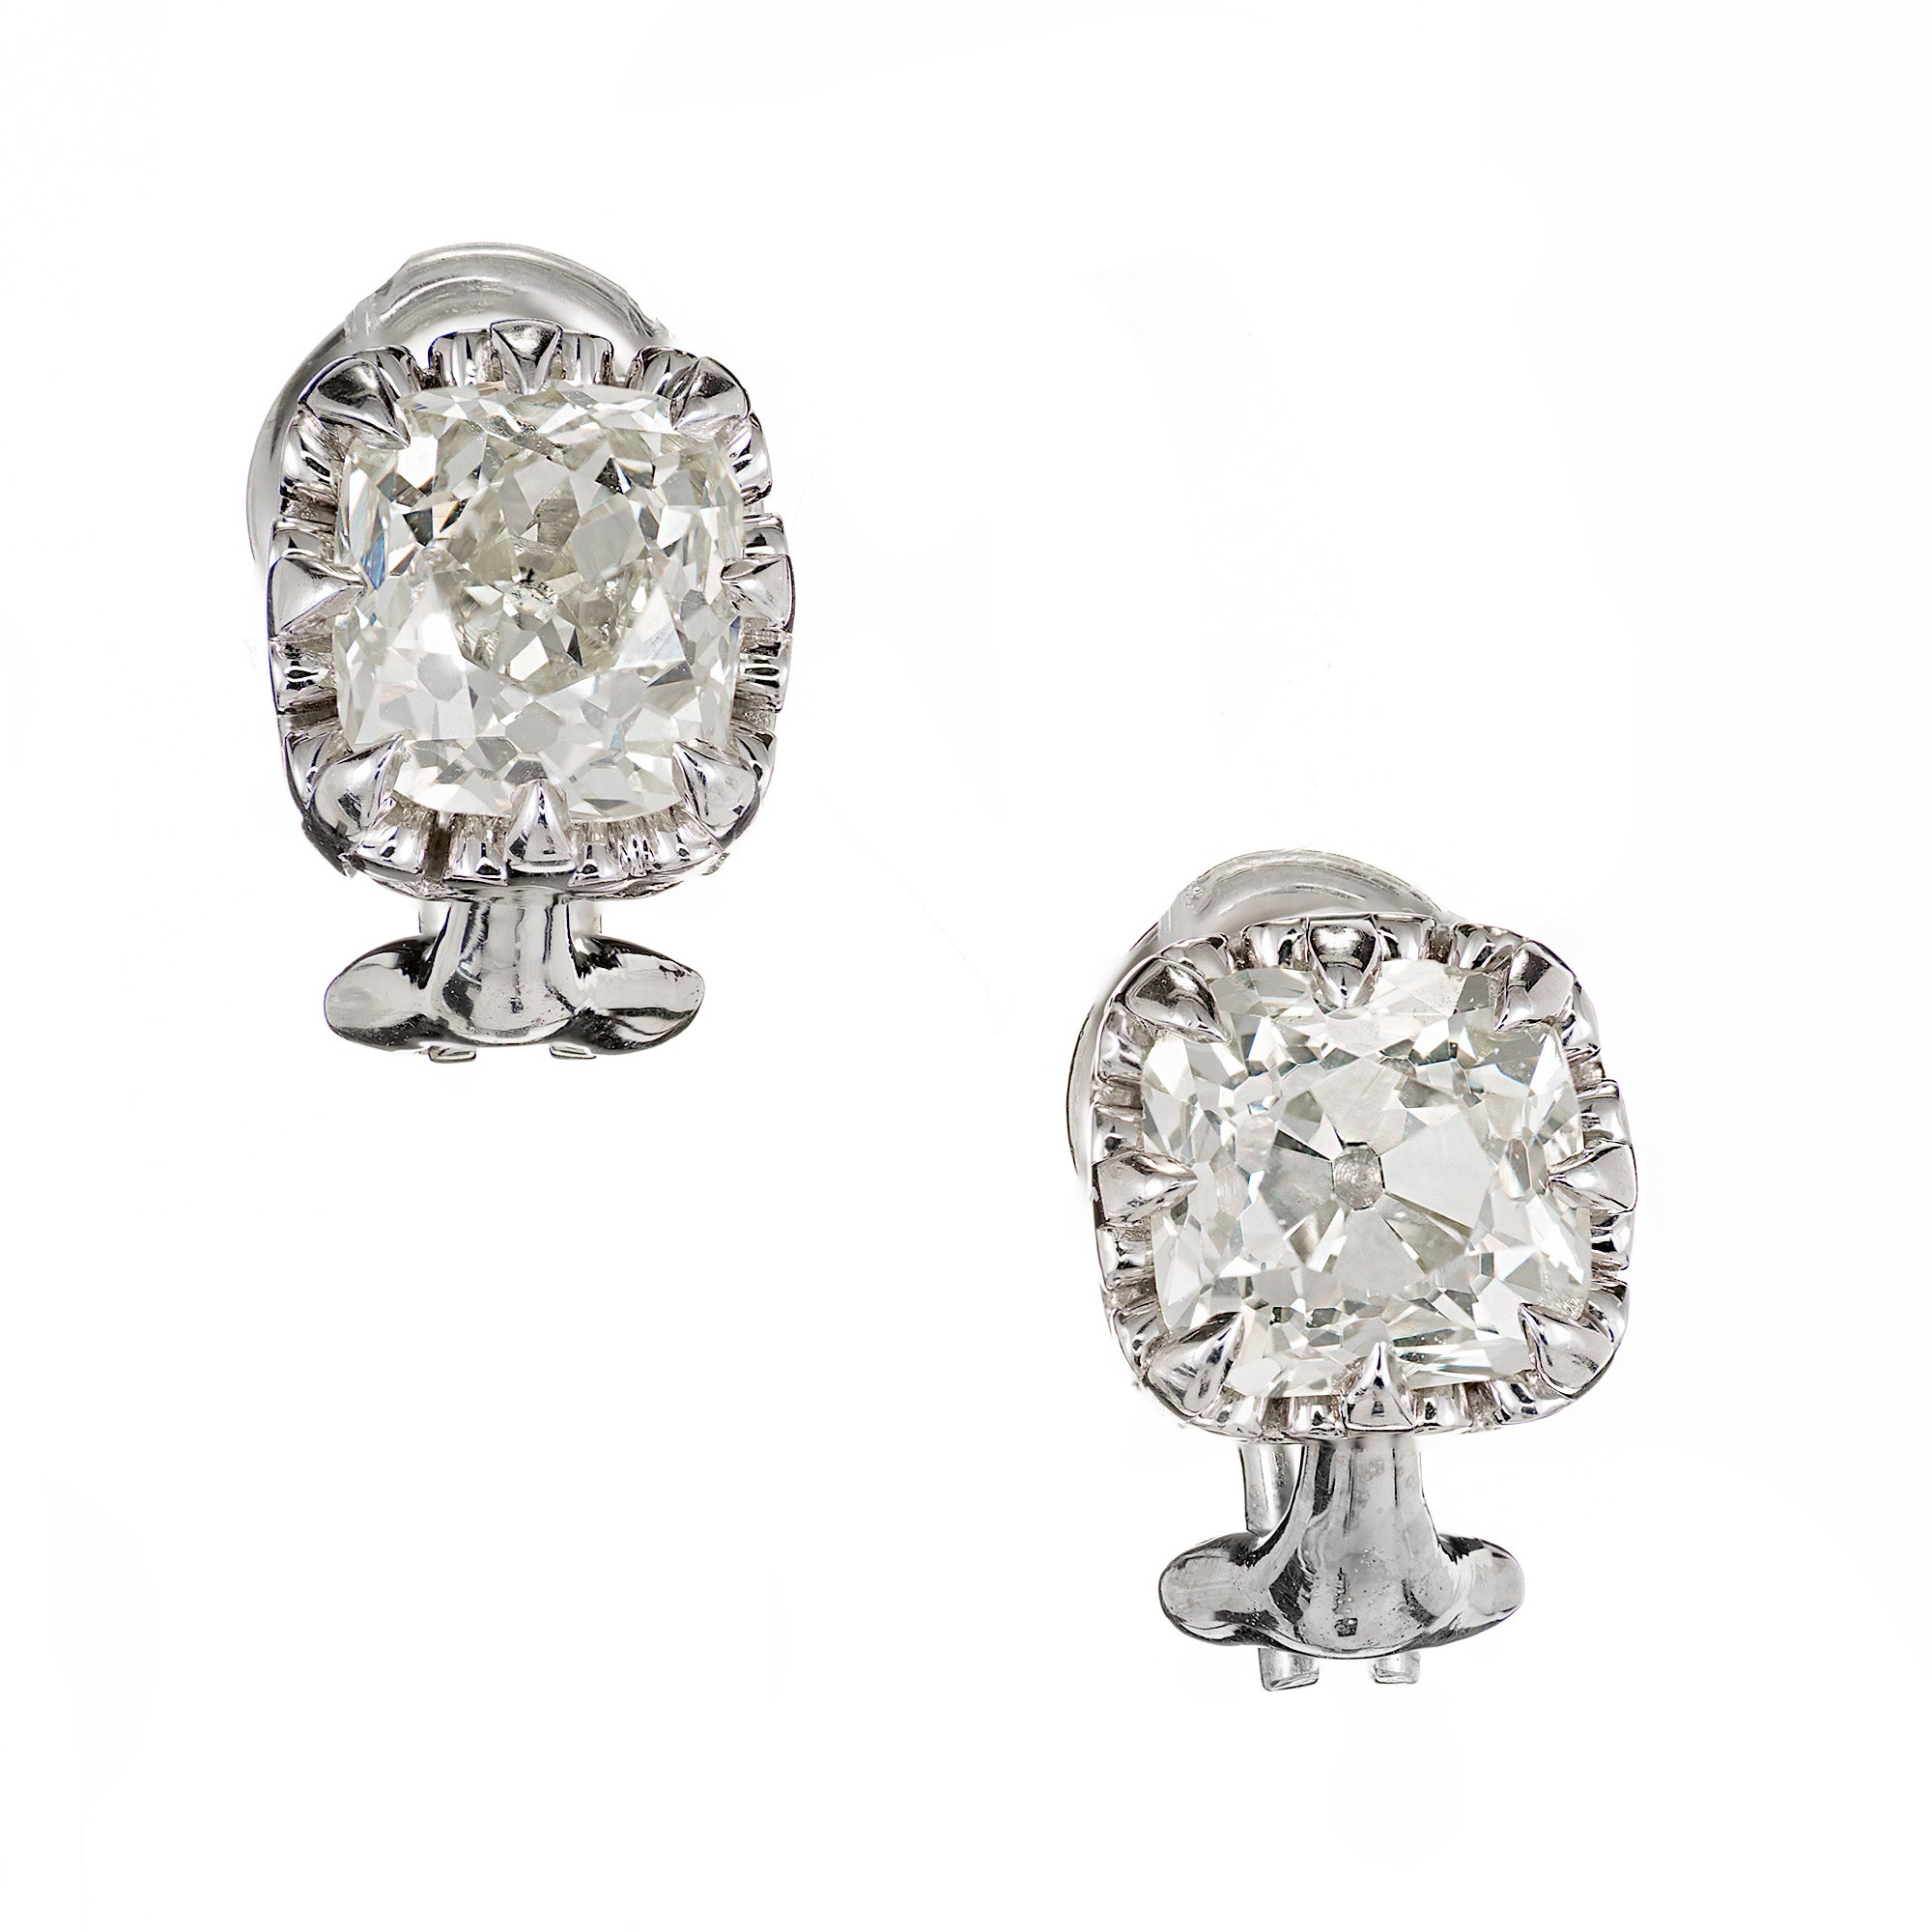 main cut buy round baguette diamond s studs earrings white gh gold princess carat whwh solitaire men views more